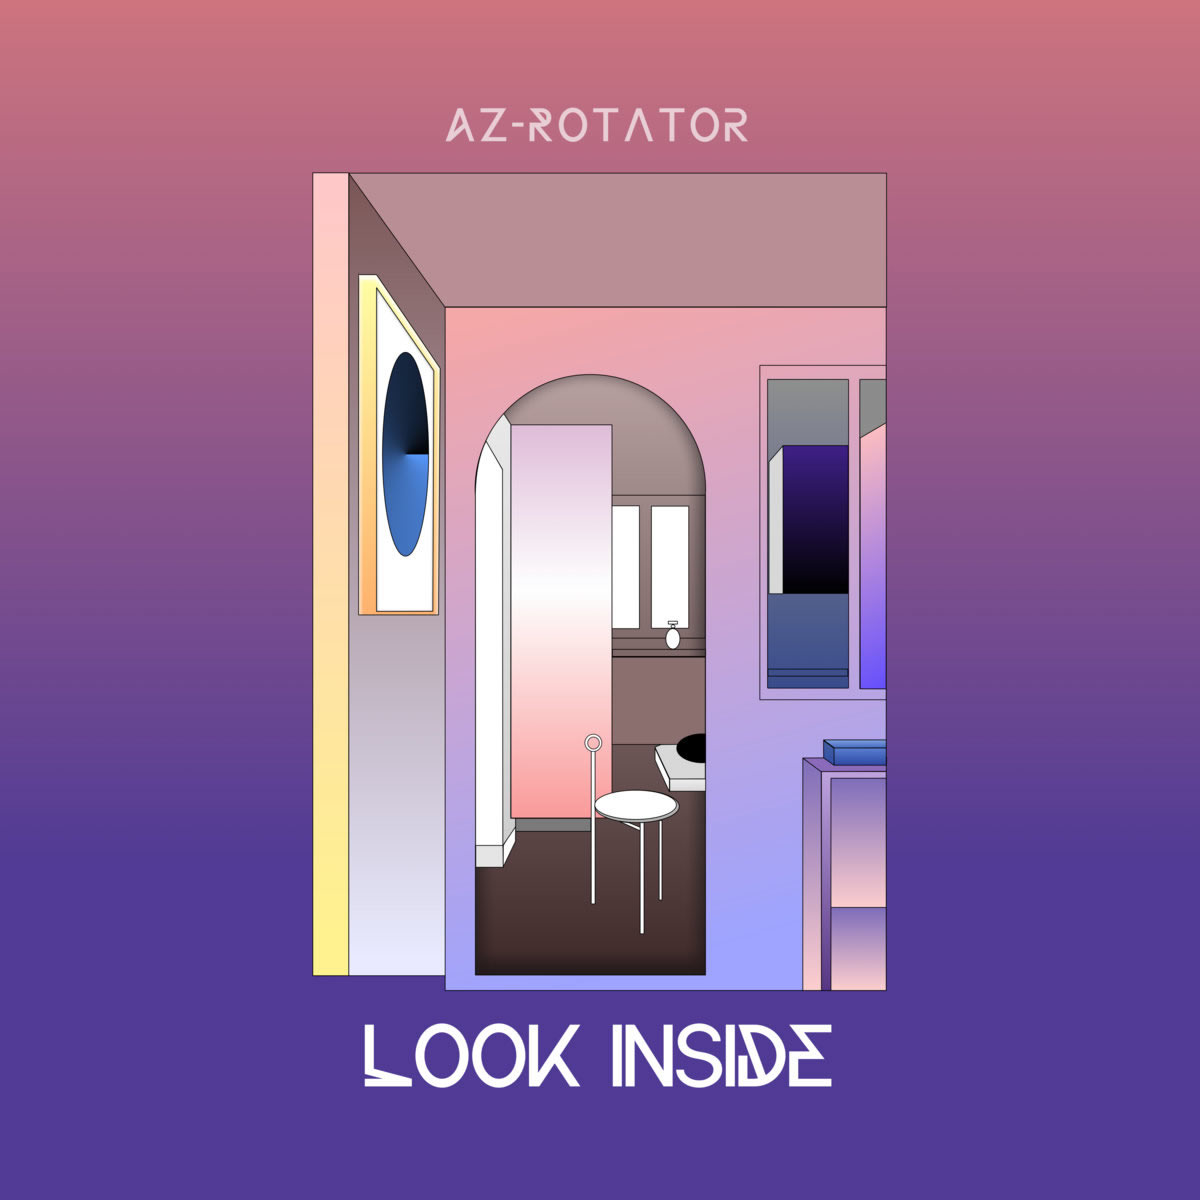 AZ-ROTATOR - Look Inside